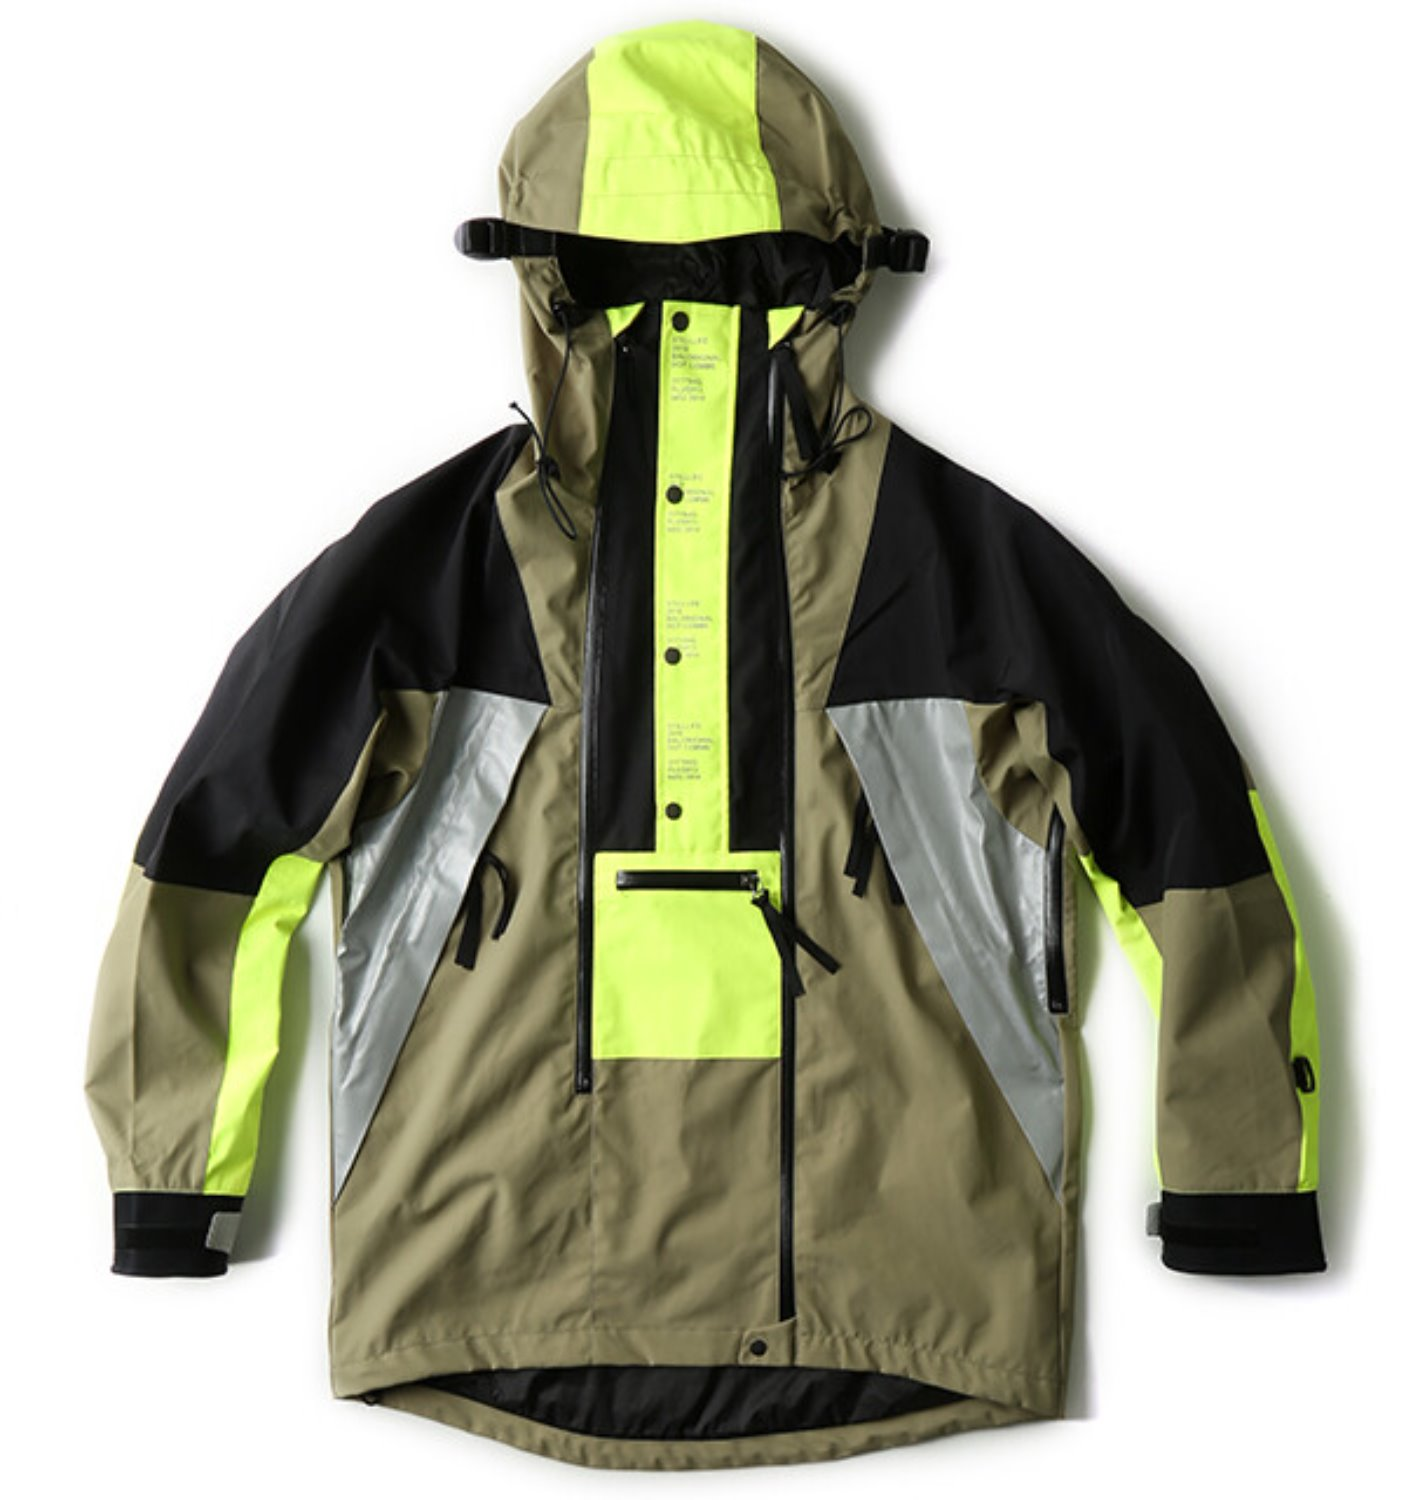 EXTREME MOUNTAIN JACKET KHAKI